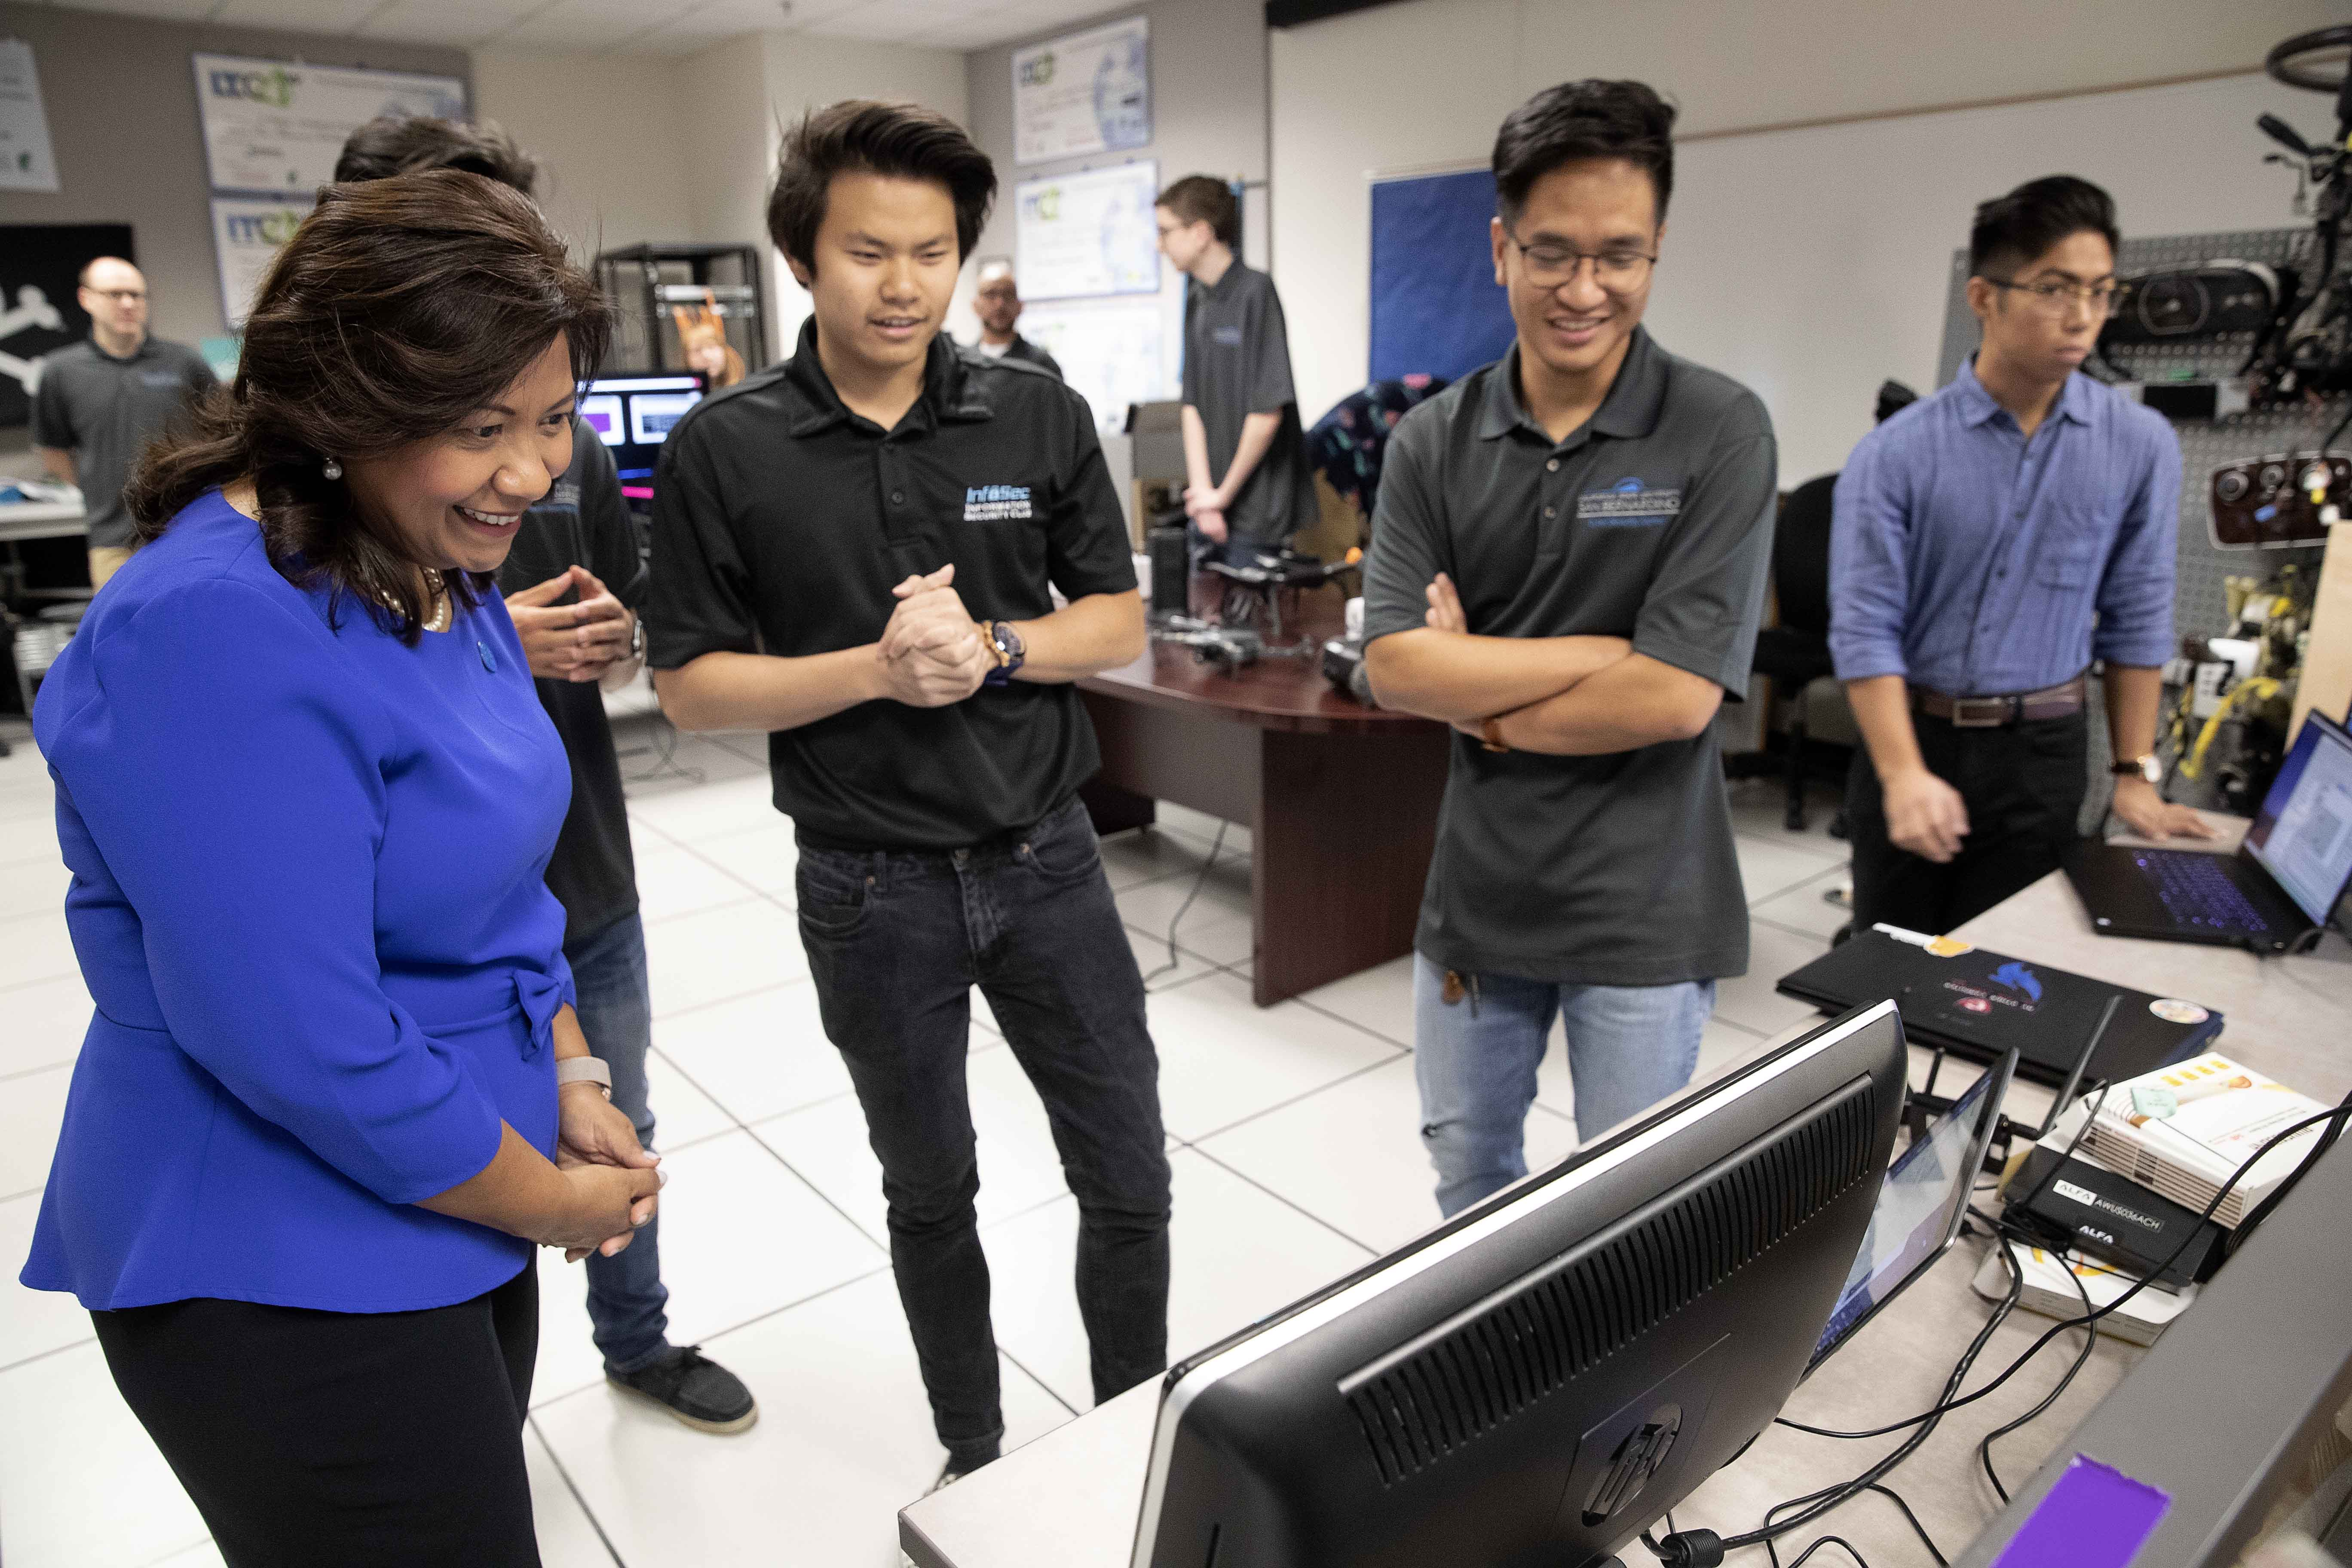 Torres's visit included a tour of the CSUSB Cybersecurity Center